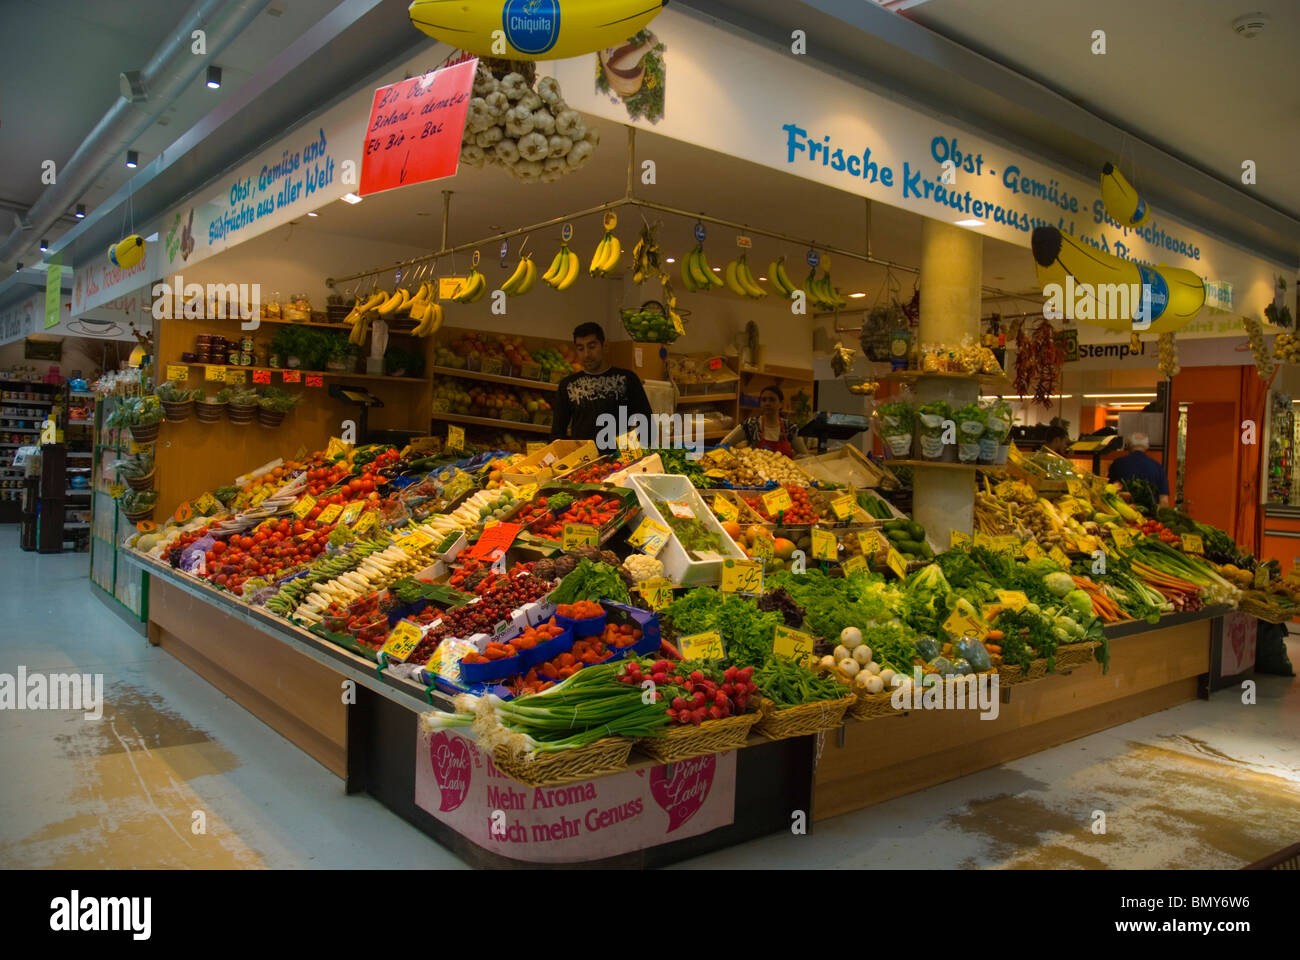 Greengrocer in Marheineke Markthalle market hall Kreuzberg west Berlin Germany Europe - Stock Image